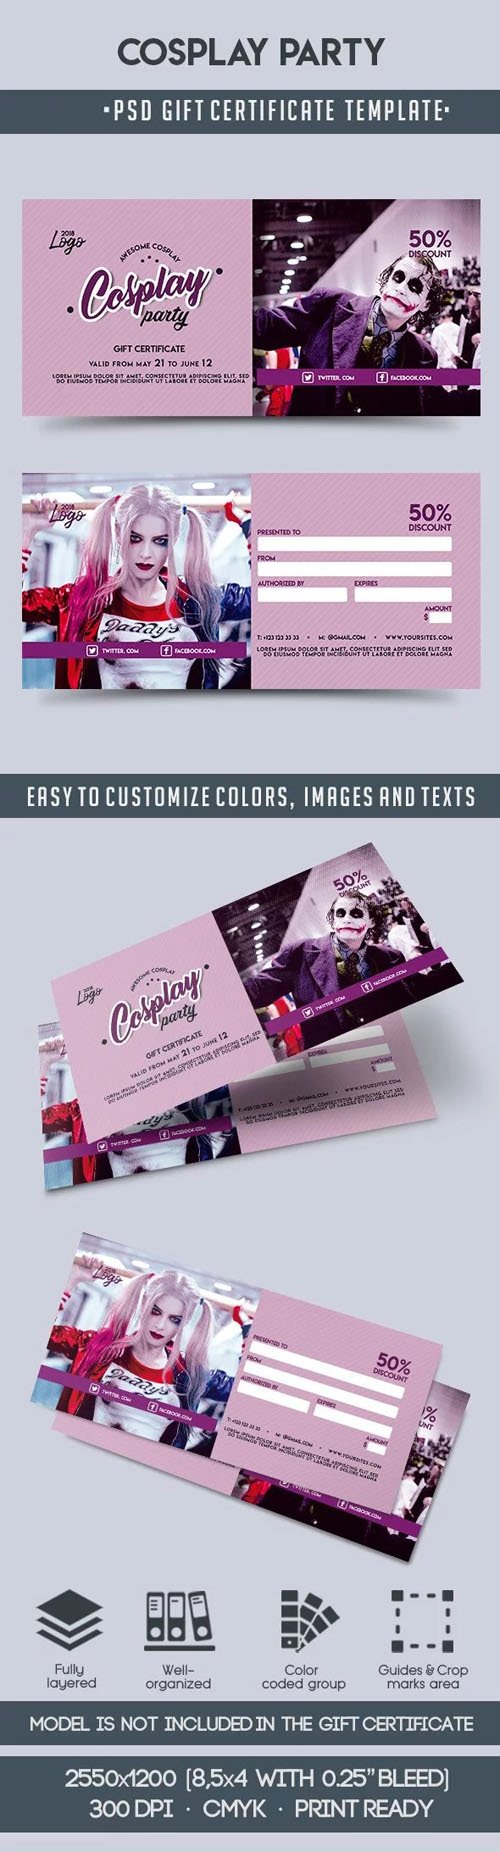 Cosplay Party - Gift Certificate PSD Template